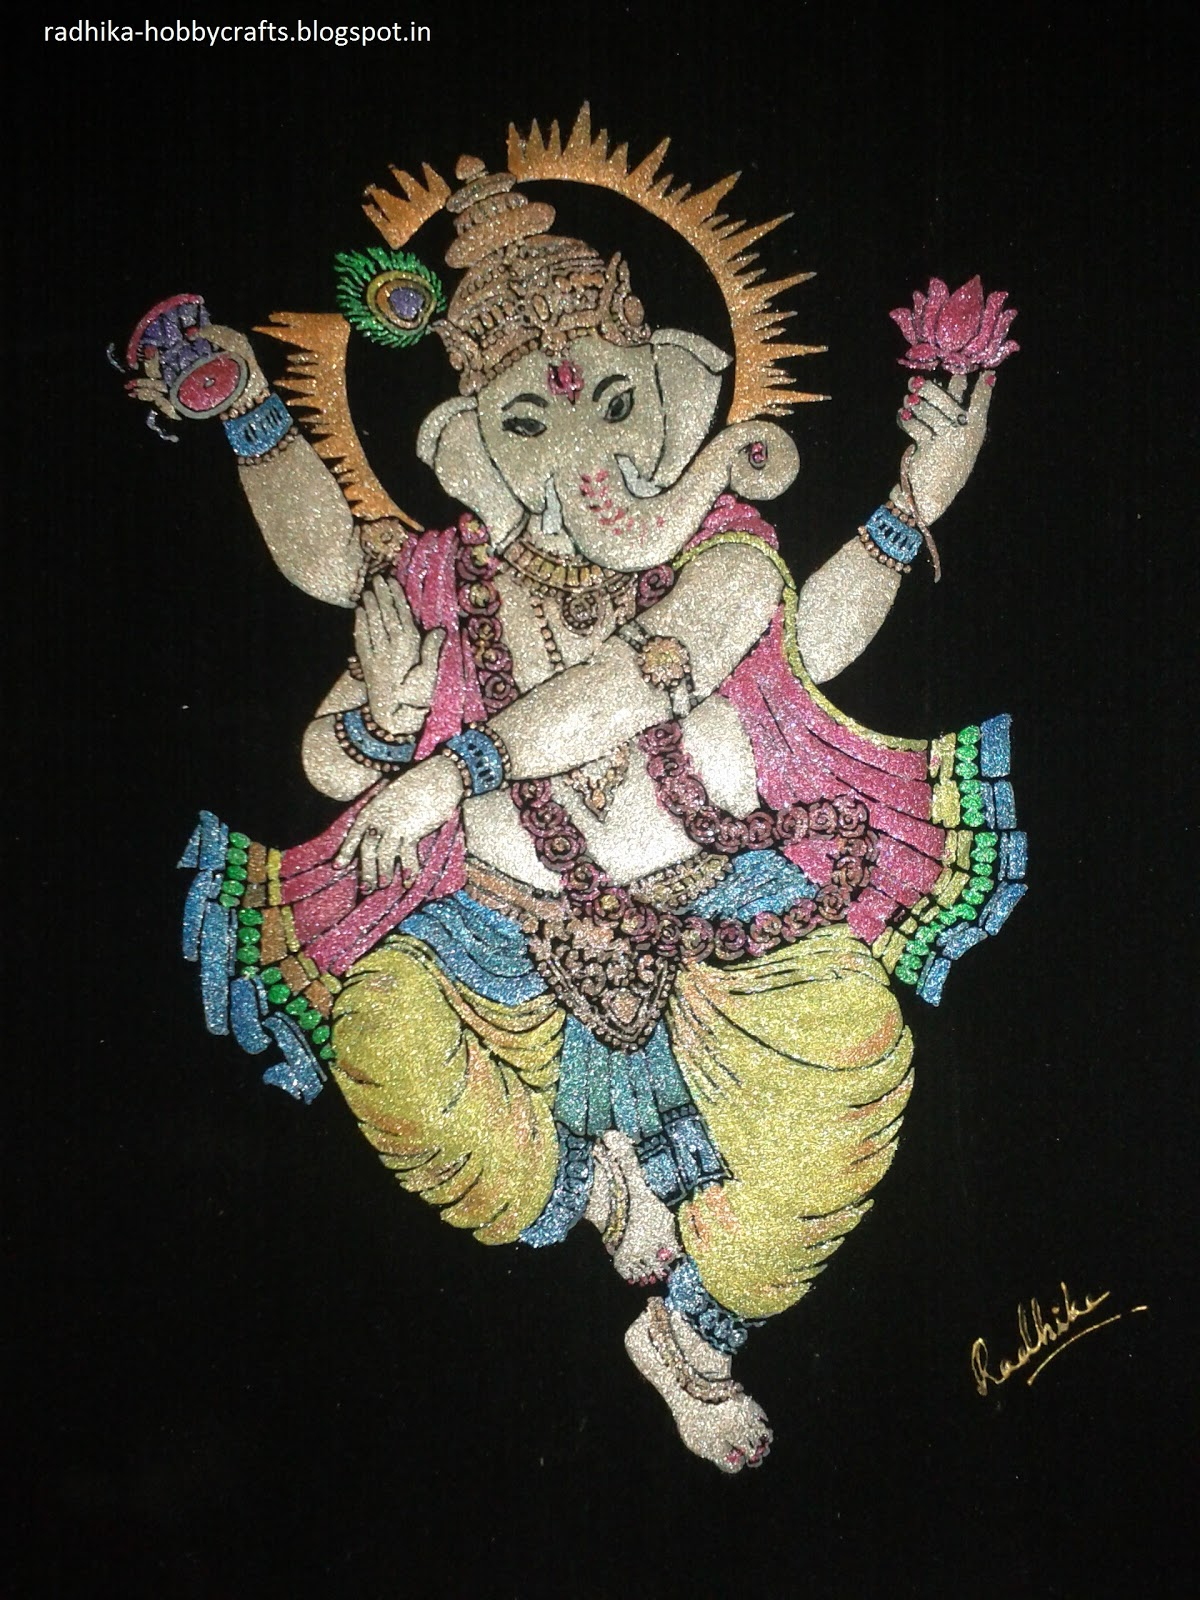 How To Make Acrylic Sheet Rangoli Home Decorations During